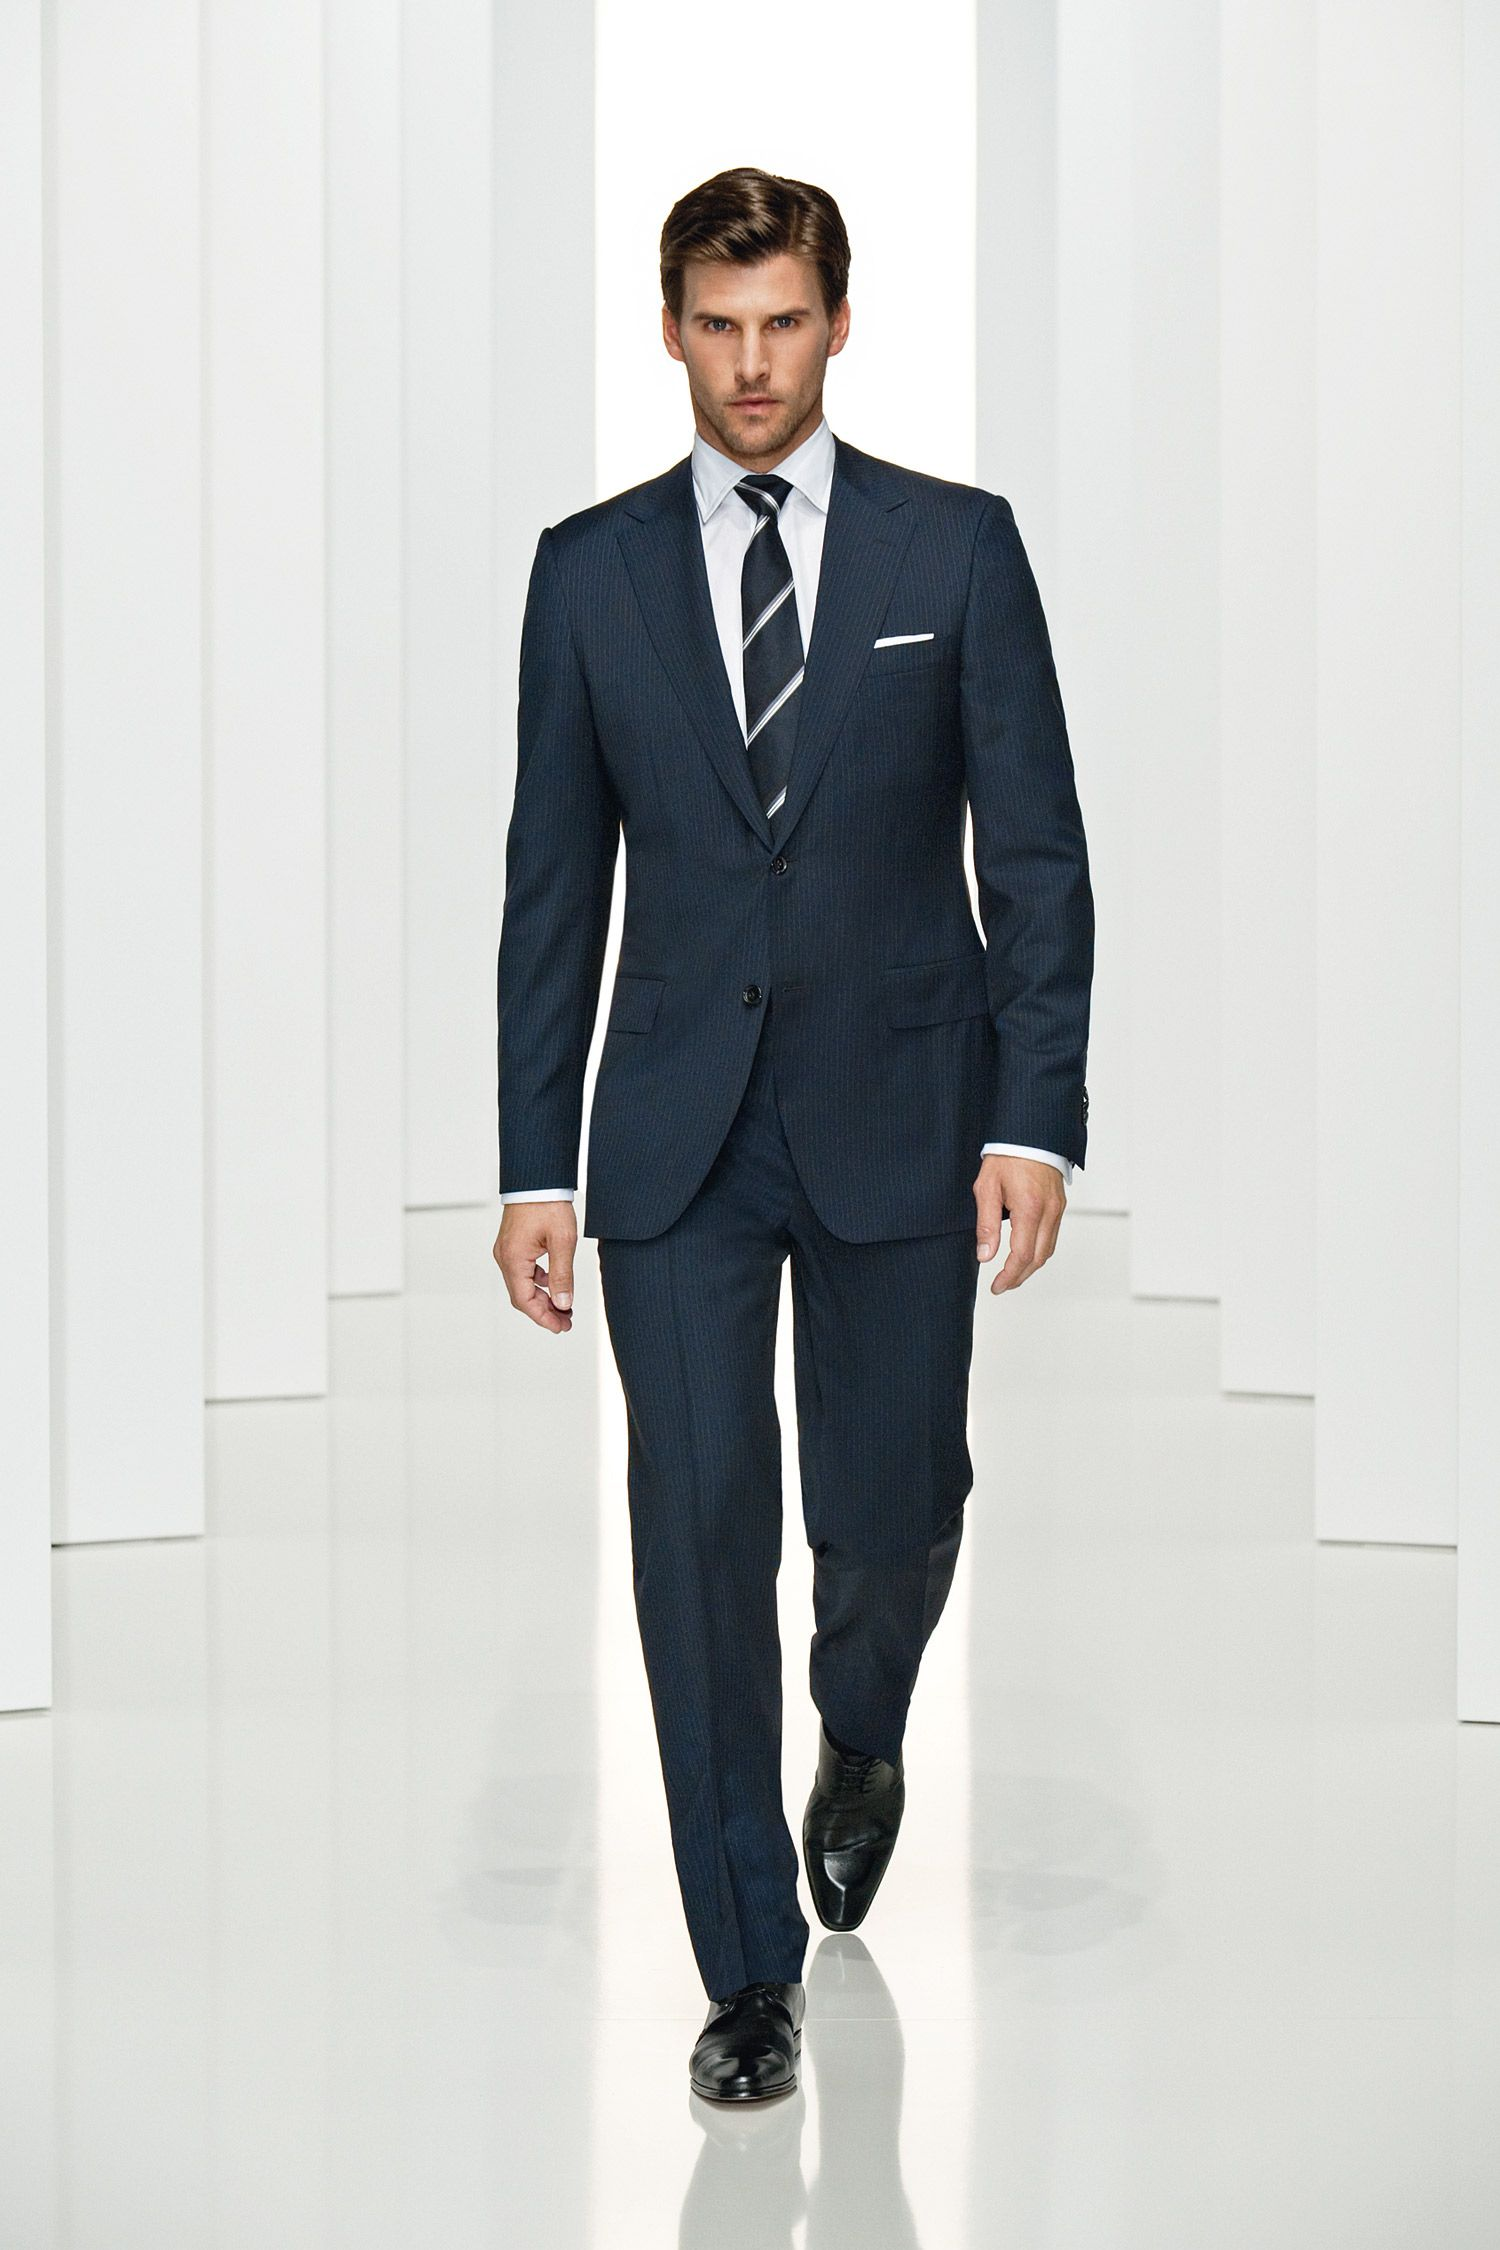 Dark blue suit with white shirt and dark blue and grey stripped tie, white  pocket square